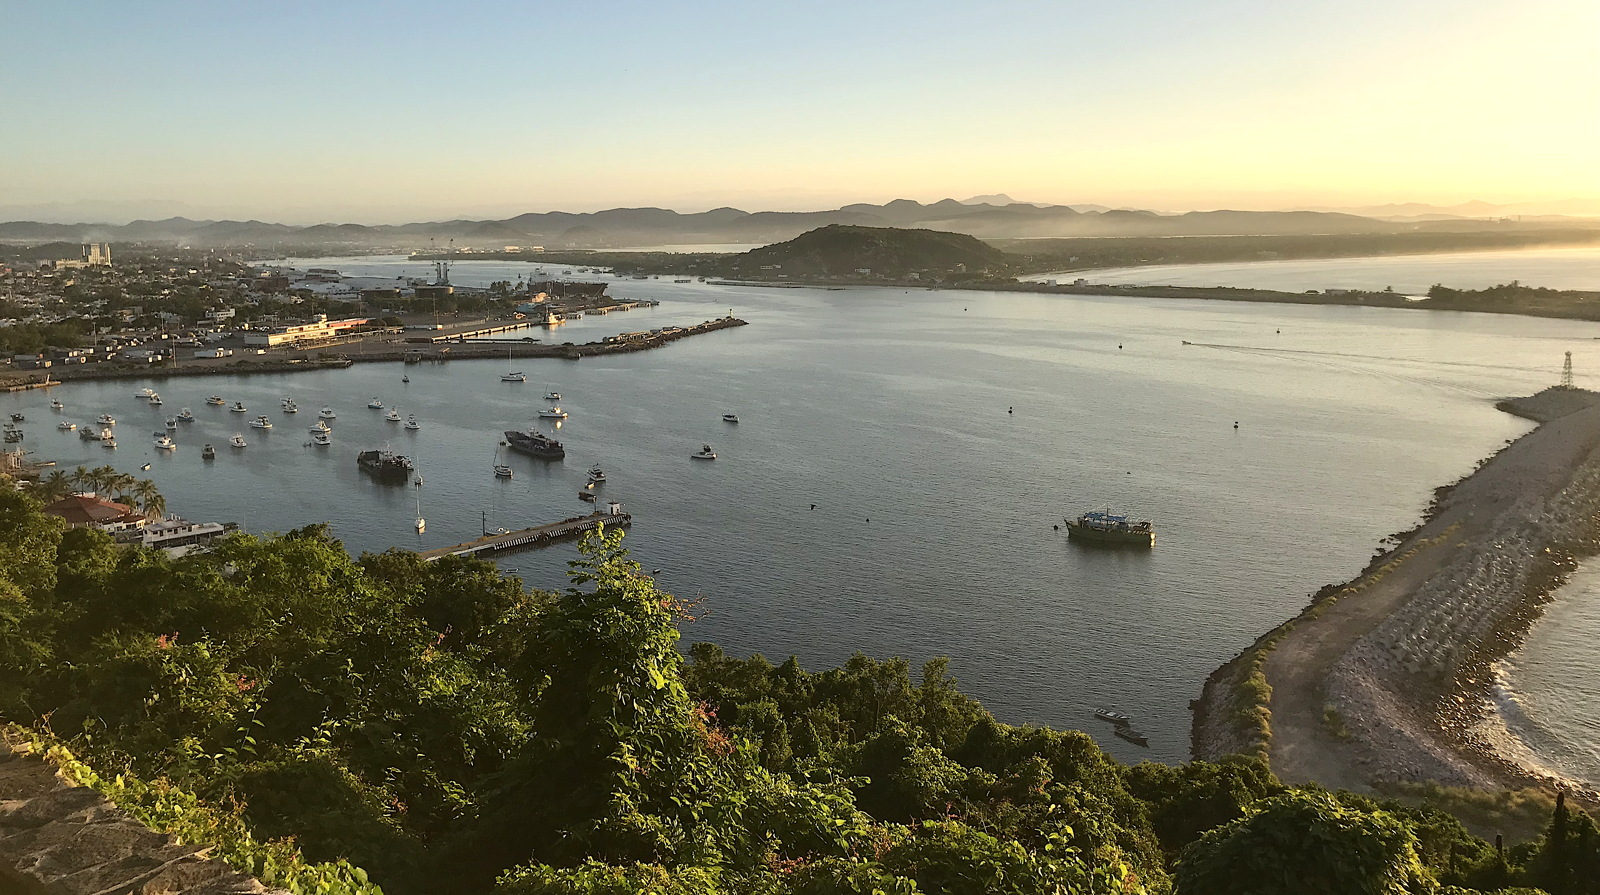 Here comes the sun. Early morning hikes uphill to Mazatlán's famous El Faro Lighthouse.